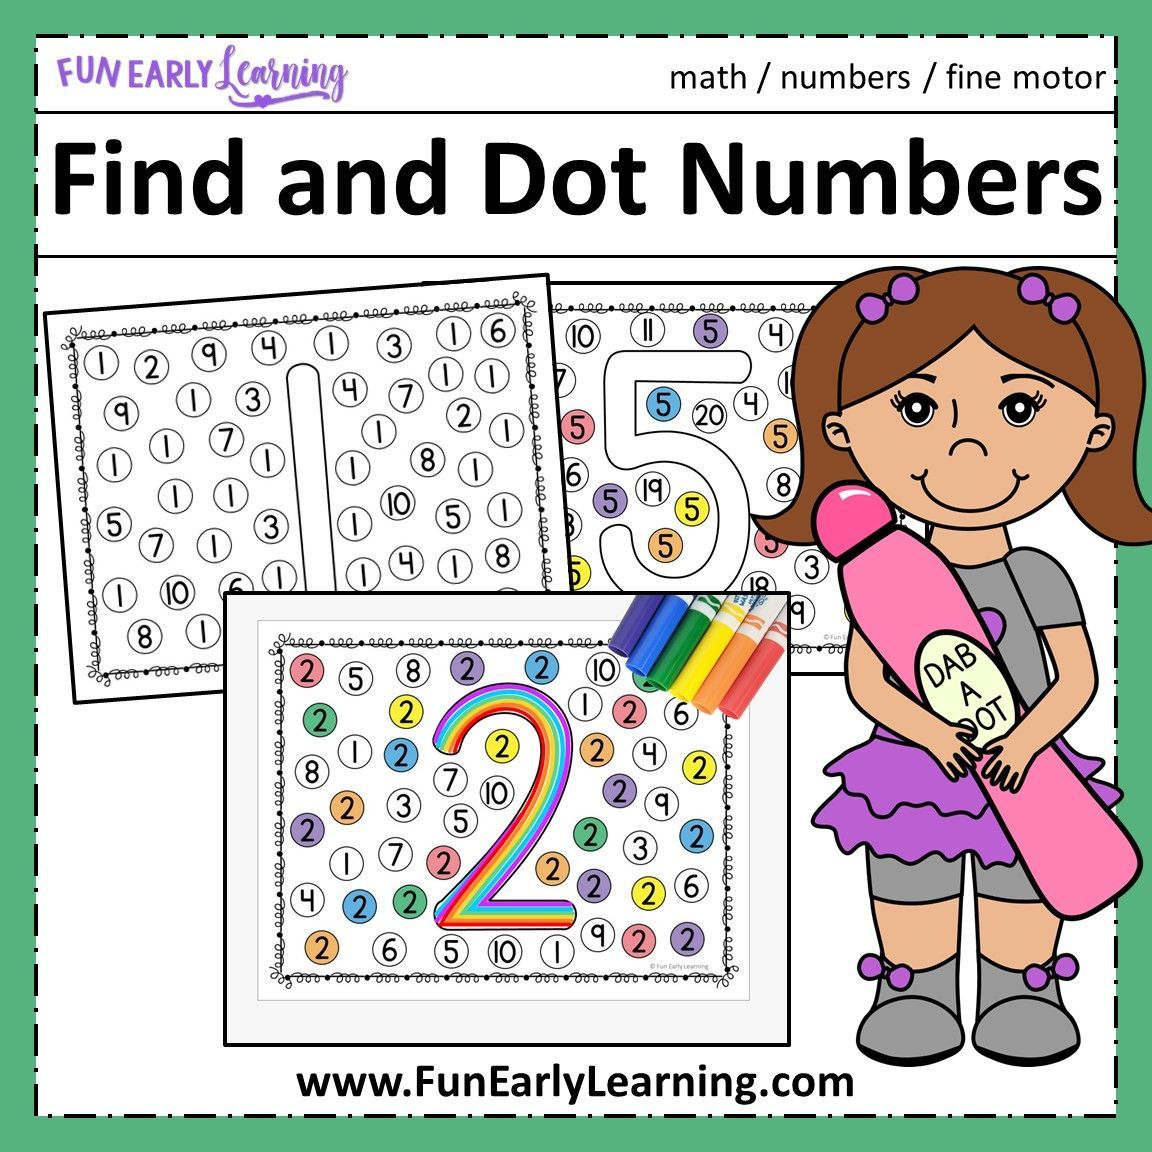 Find And Dot Matching Numbers Free Printable For Preschool